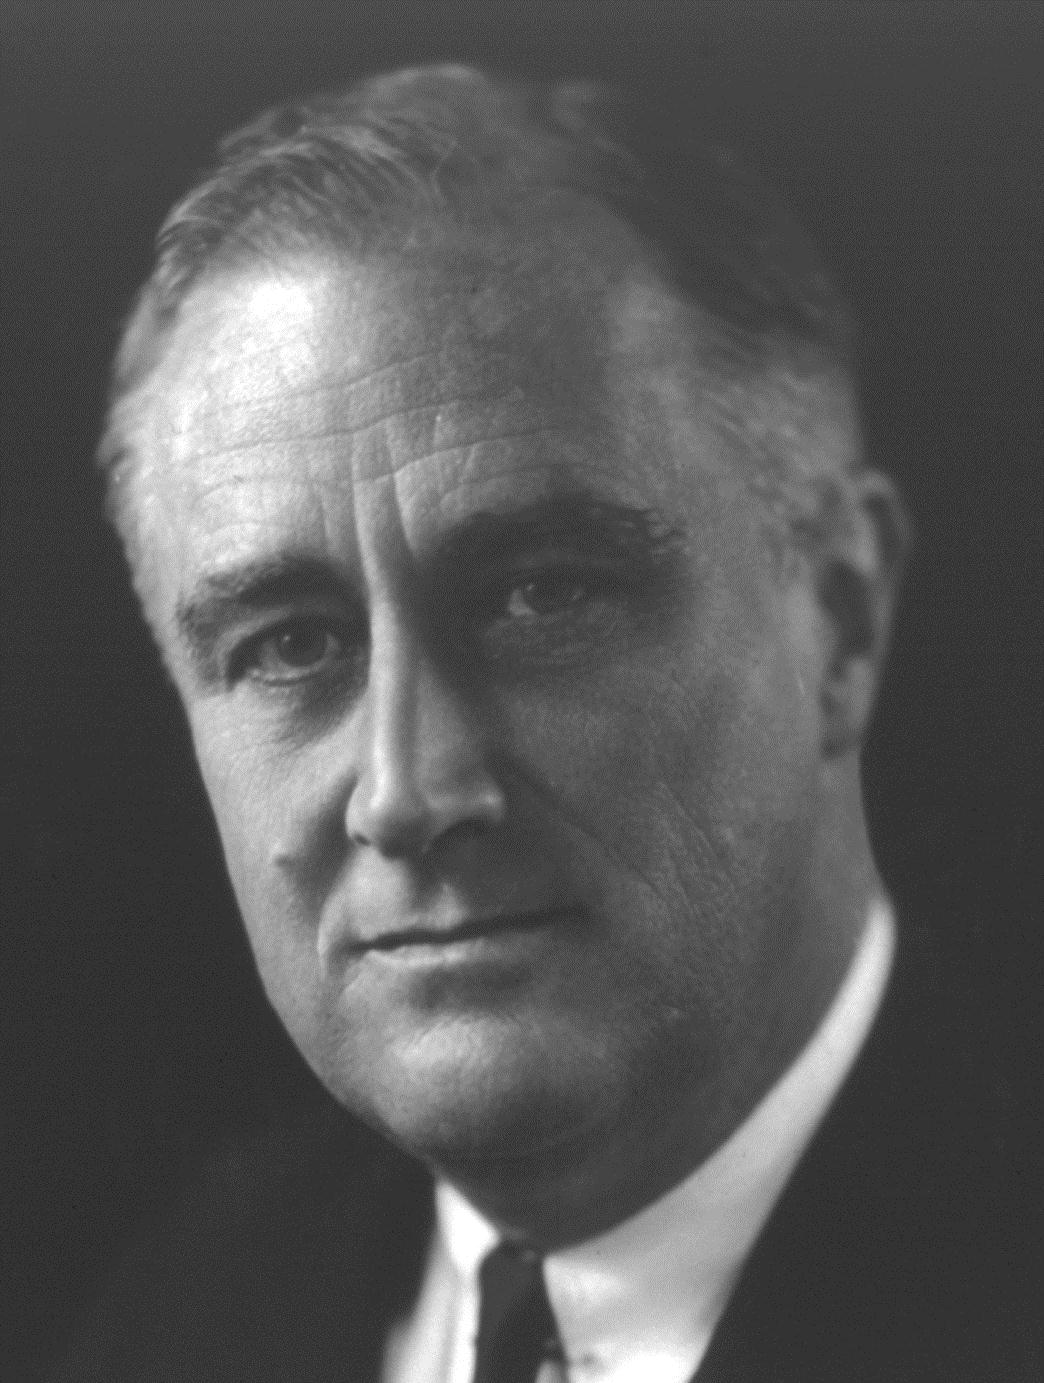 an analysis o the influence of franklin d roosevelt Enjoy the best franklin d roosevelt quotes at brainyquote quotations by franklin d roosevelt, american president, born january 30, 1882 share with your friends.